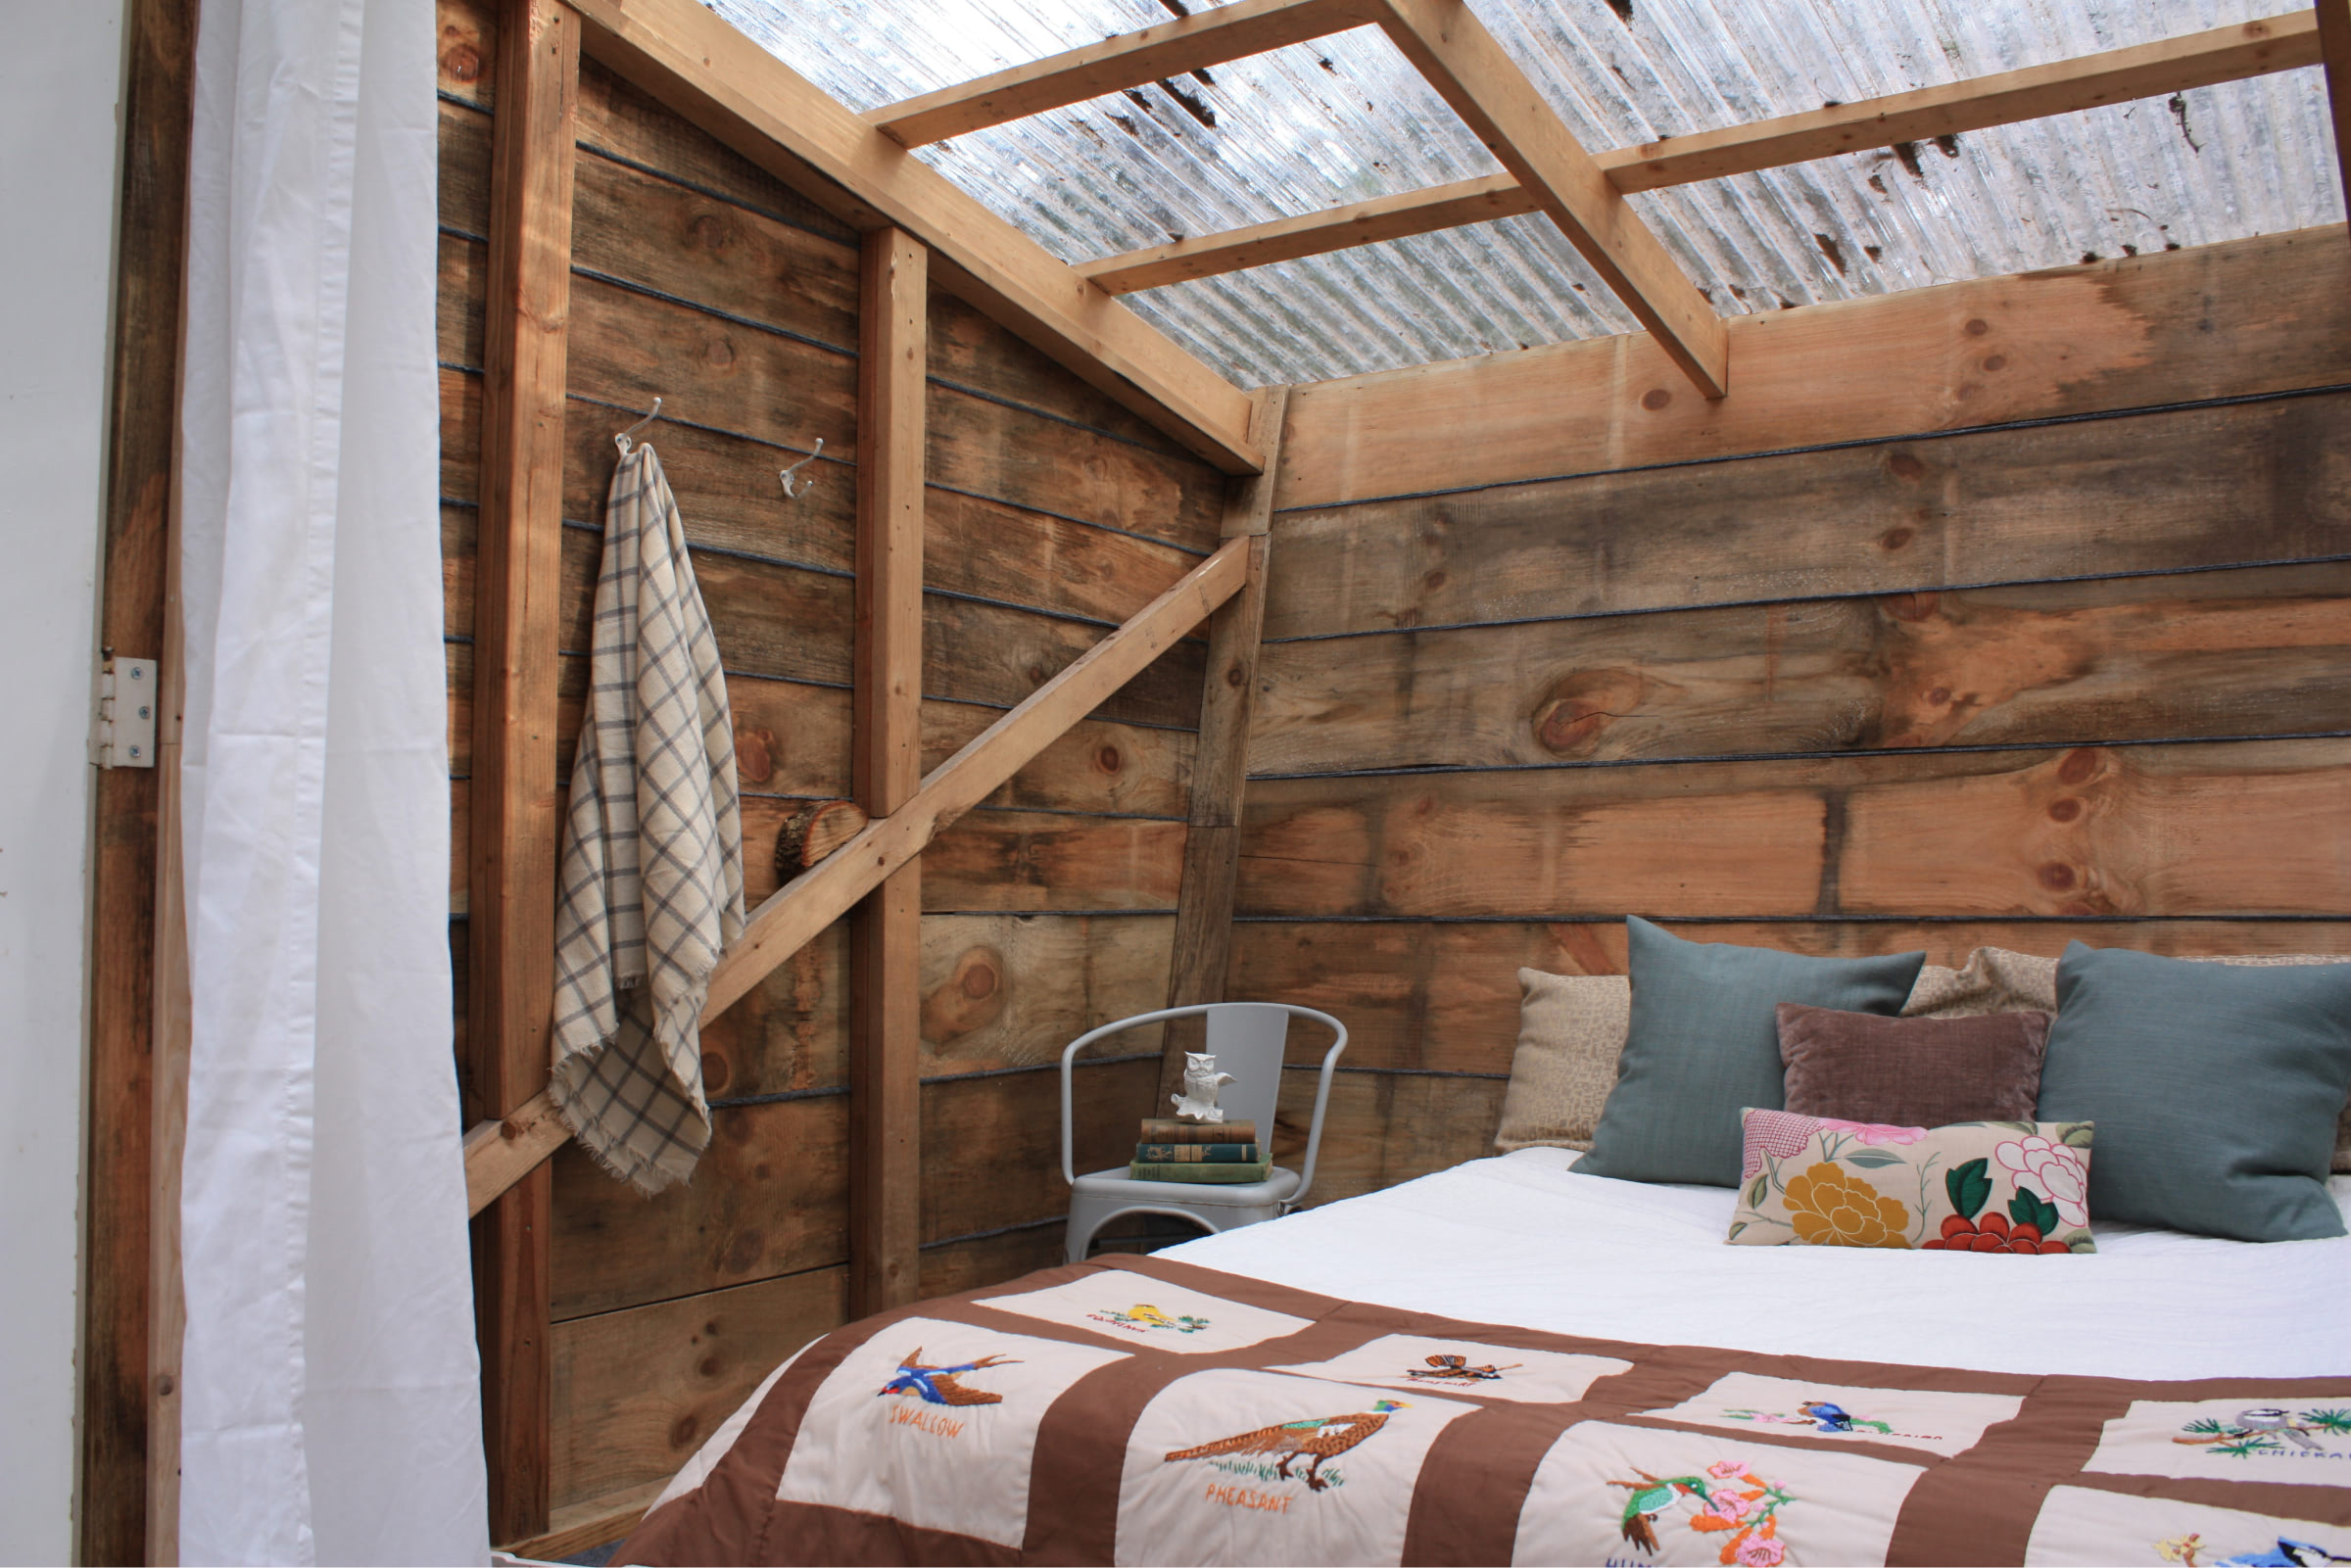 Tree house interior with bed